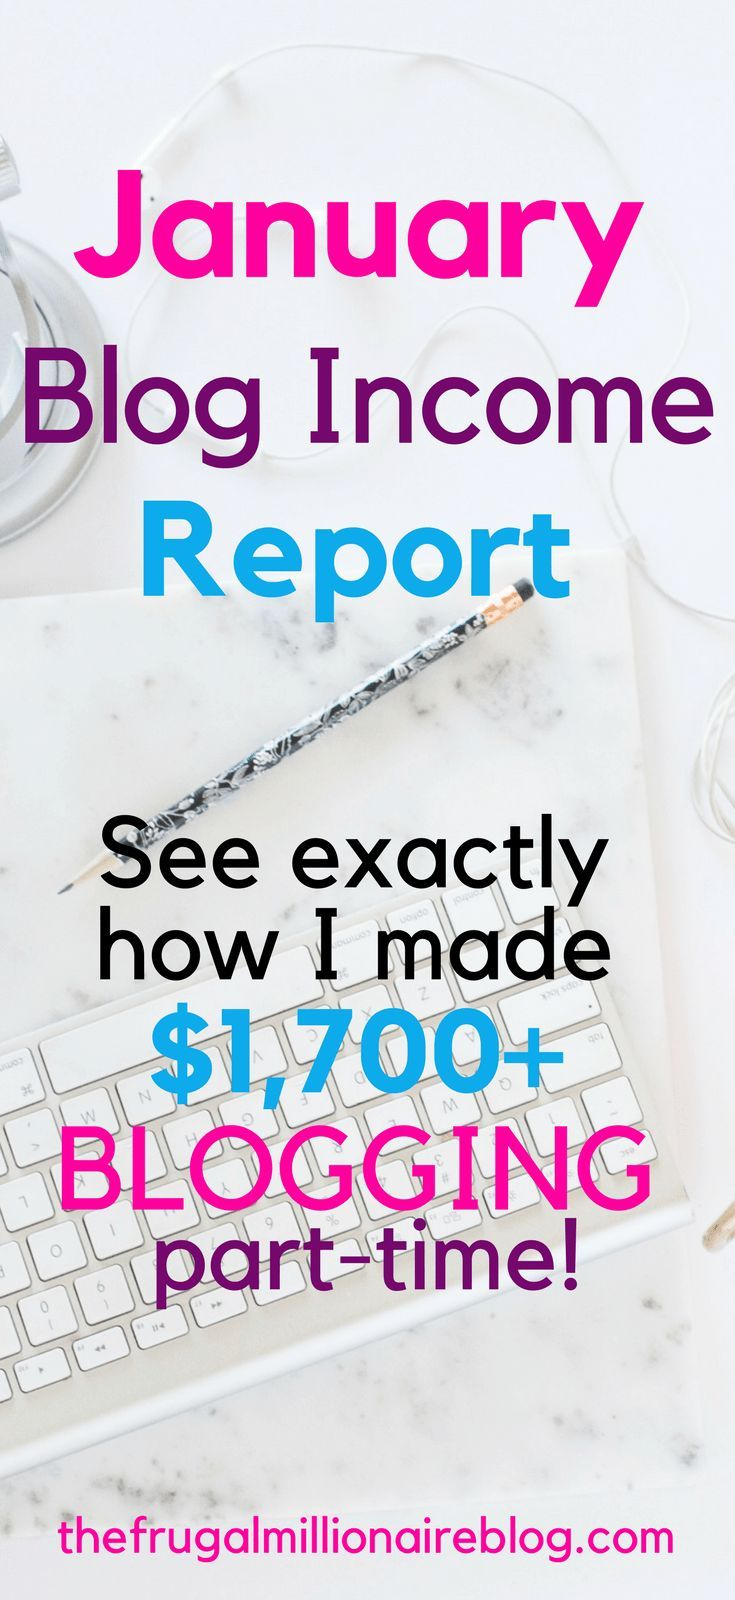 I blog part-time and make between $1000-$3500+ per month! Here, I'm spilling all the details on how to make money blogging! If you want to start an income-earning blog, you have to read this report!!